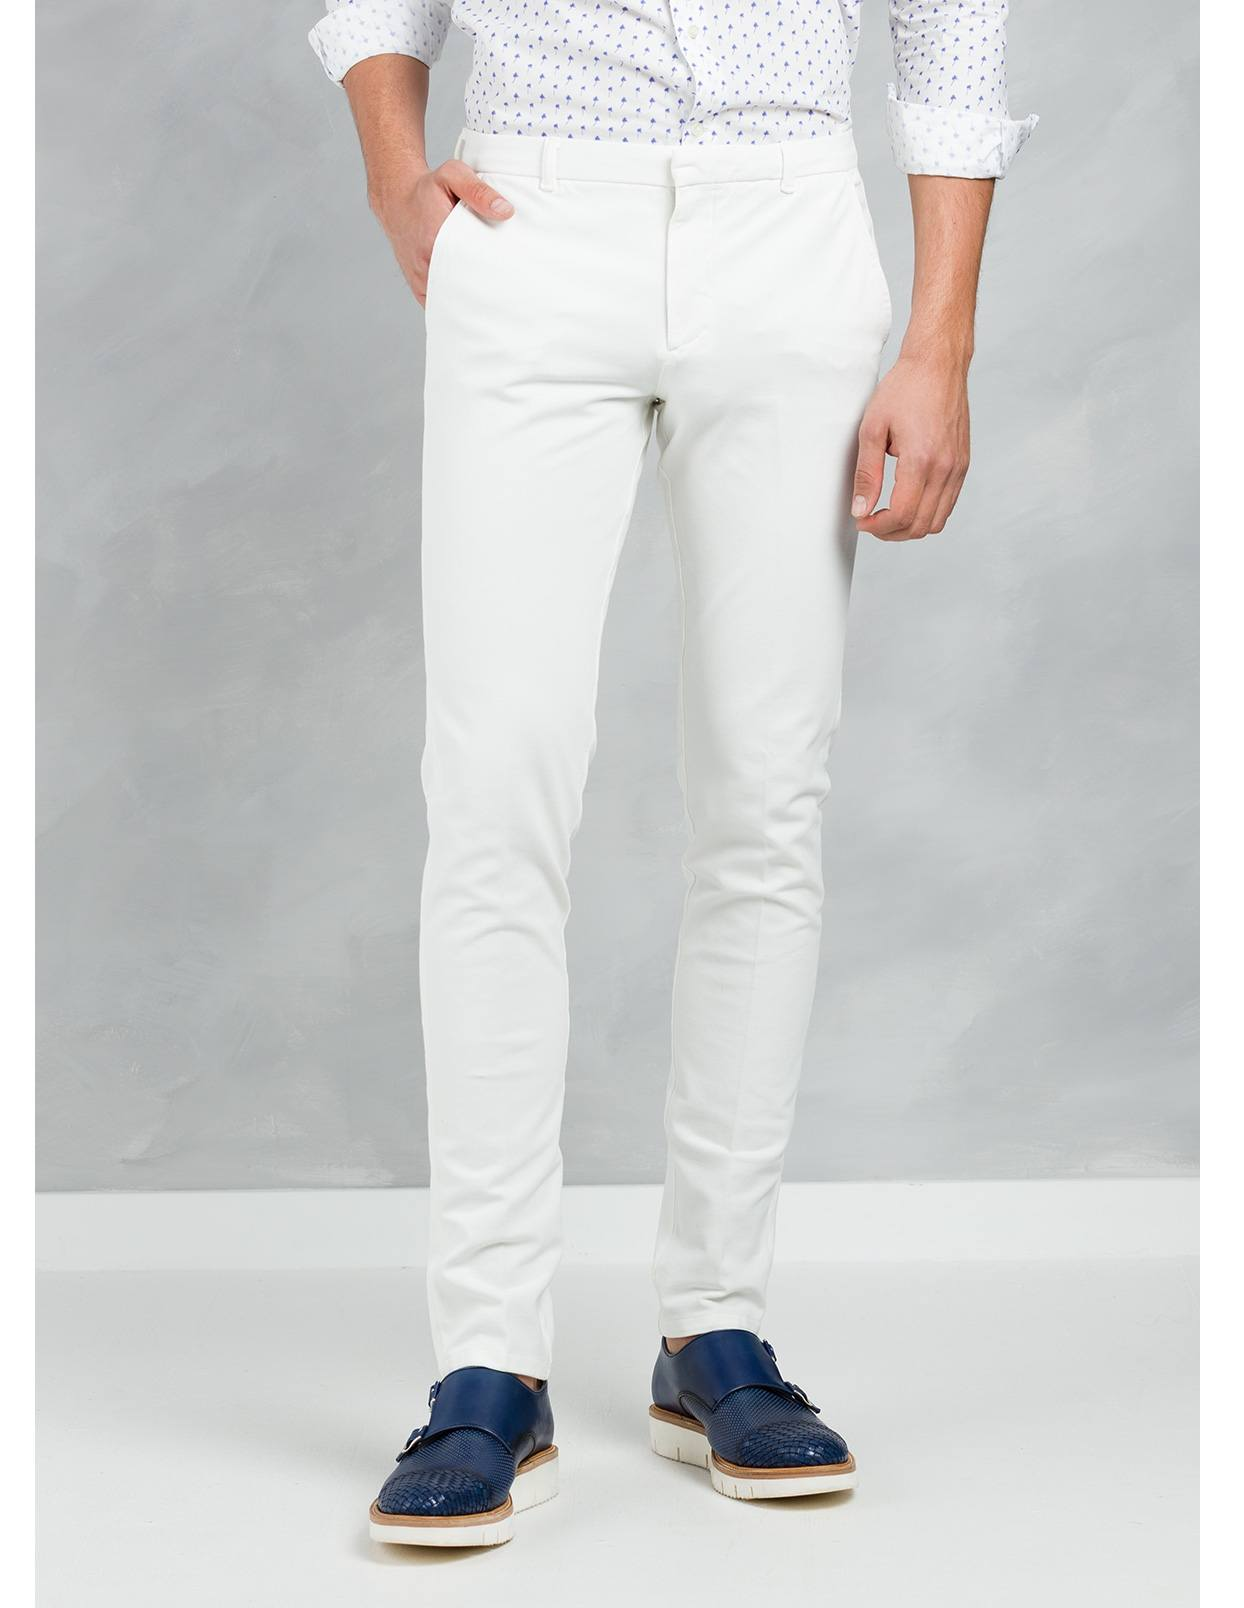 Pantalón chino SLIM FIT color crudo, algodón piquet.